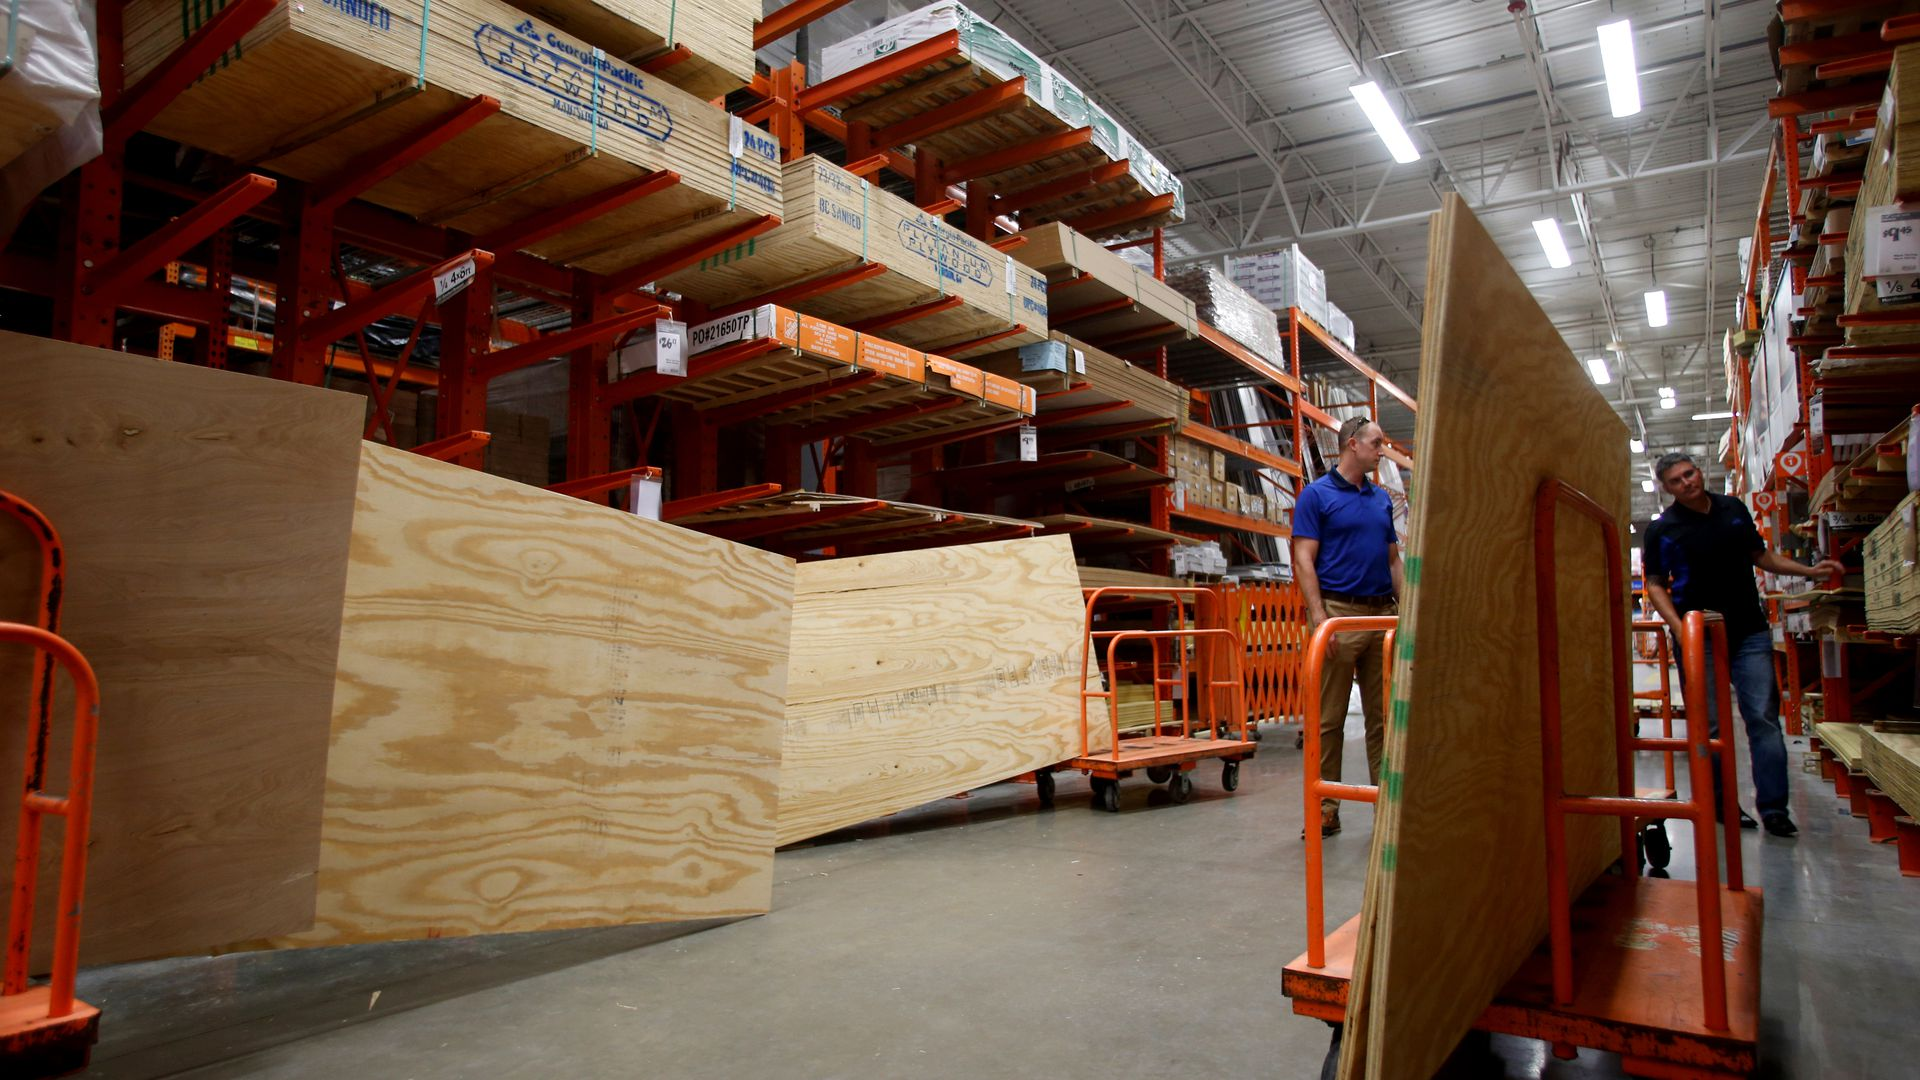 Home depot shelves with stacks of plywood